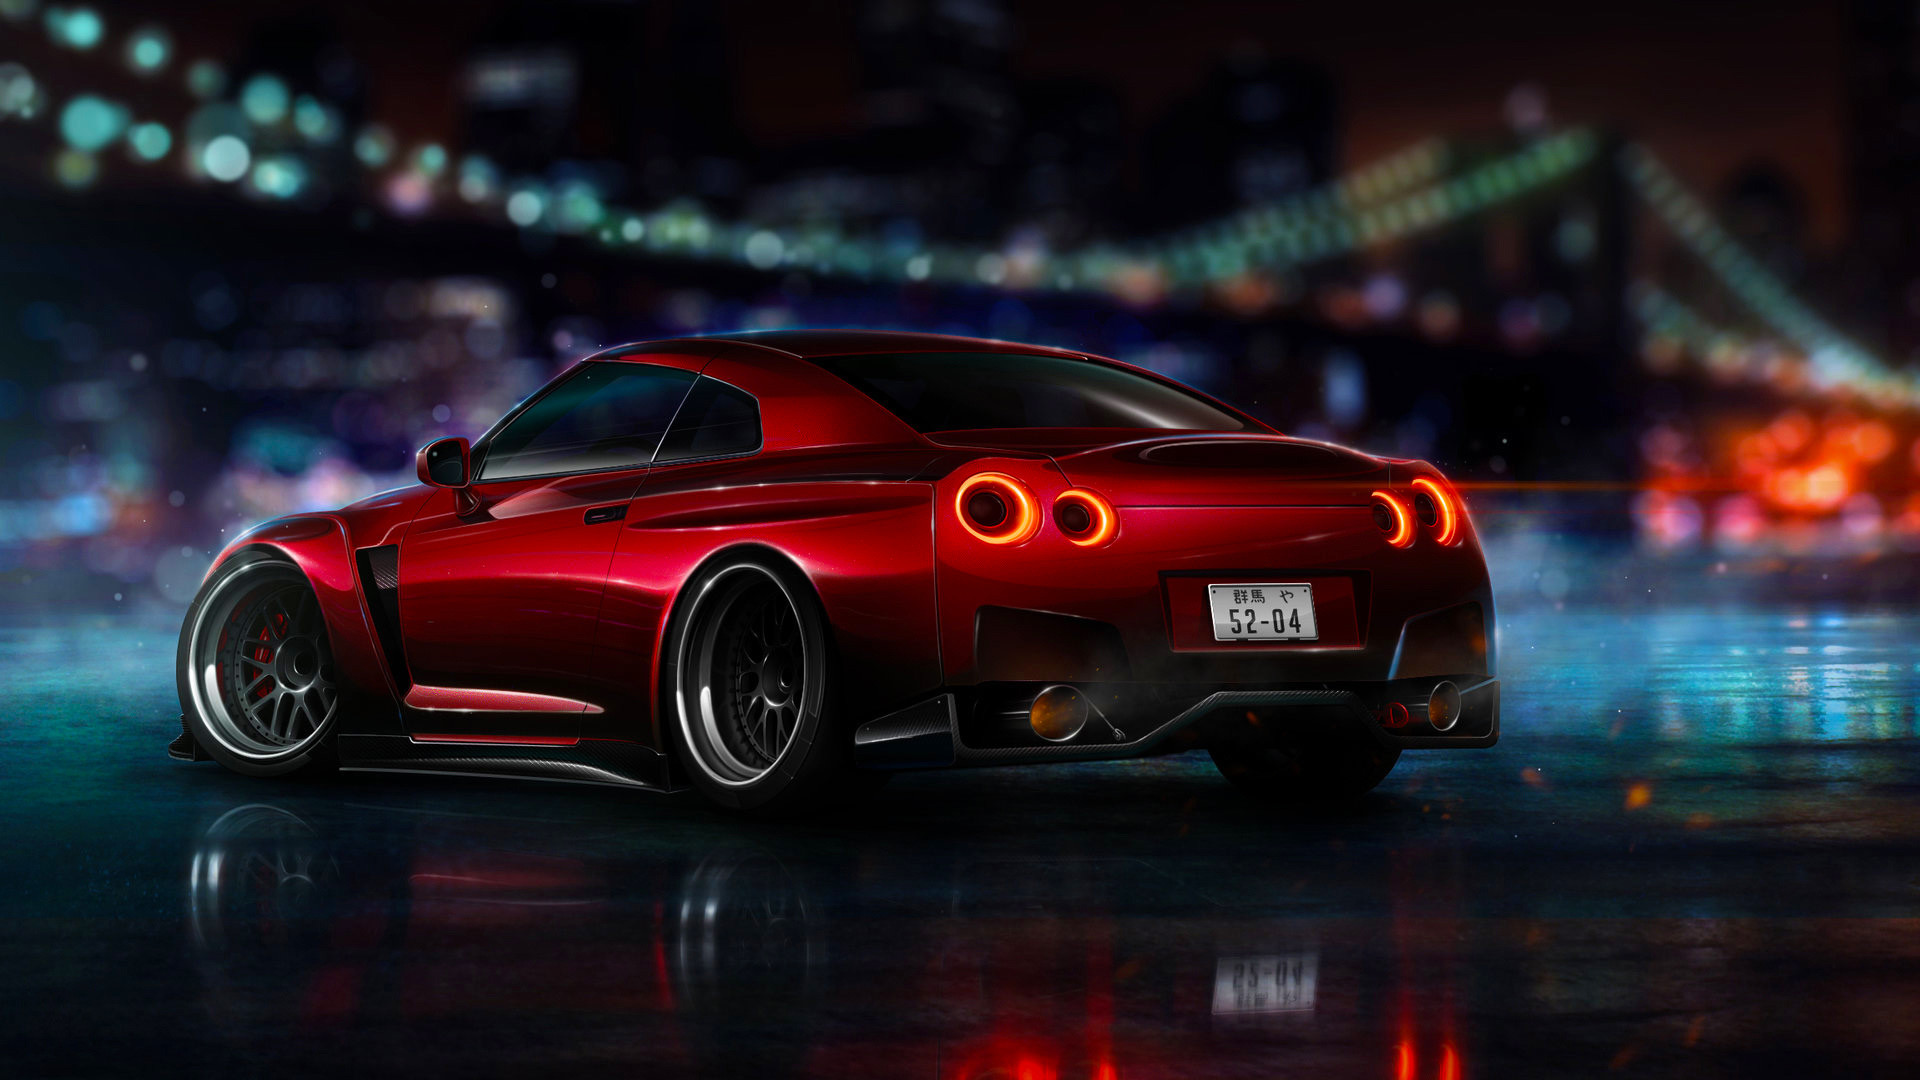 Nissan Gtr R35 Wallpapers Free Download 1920x1080